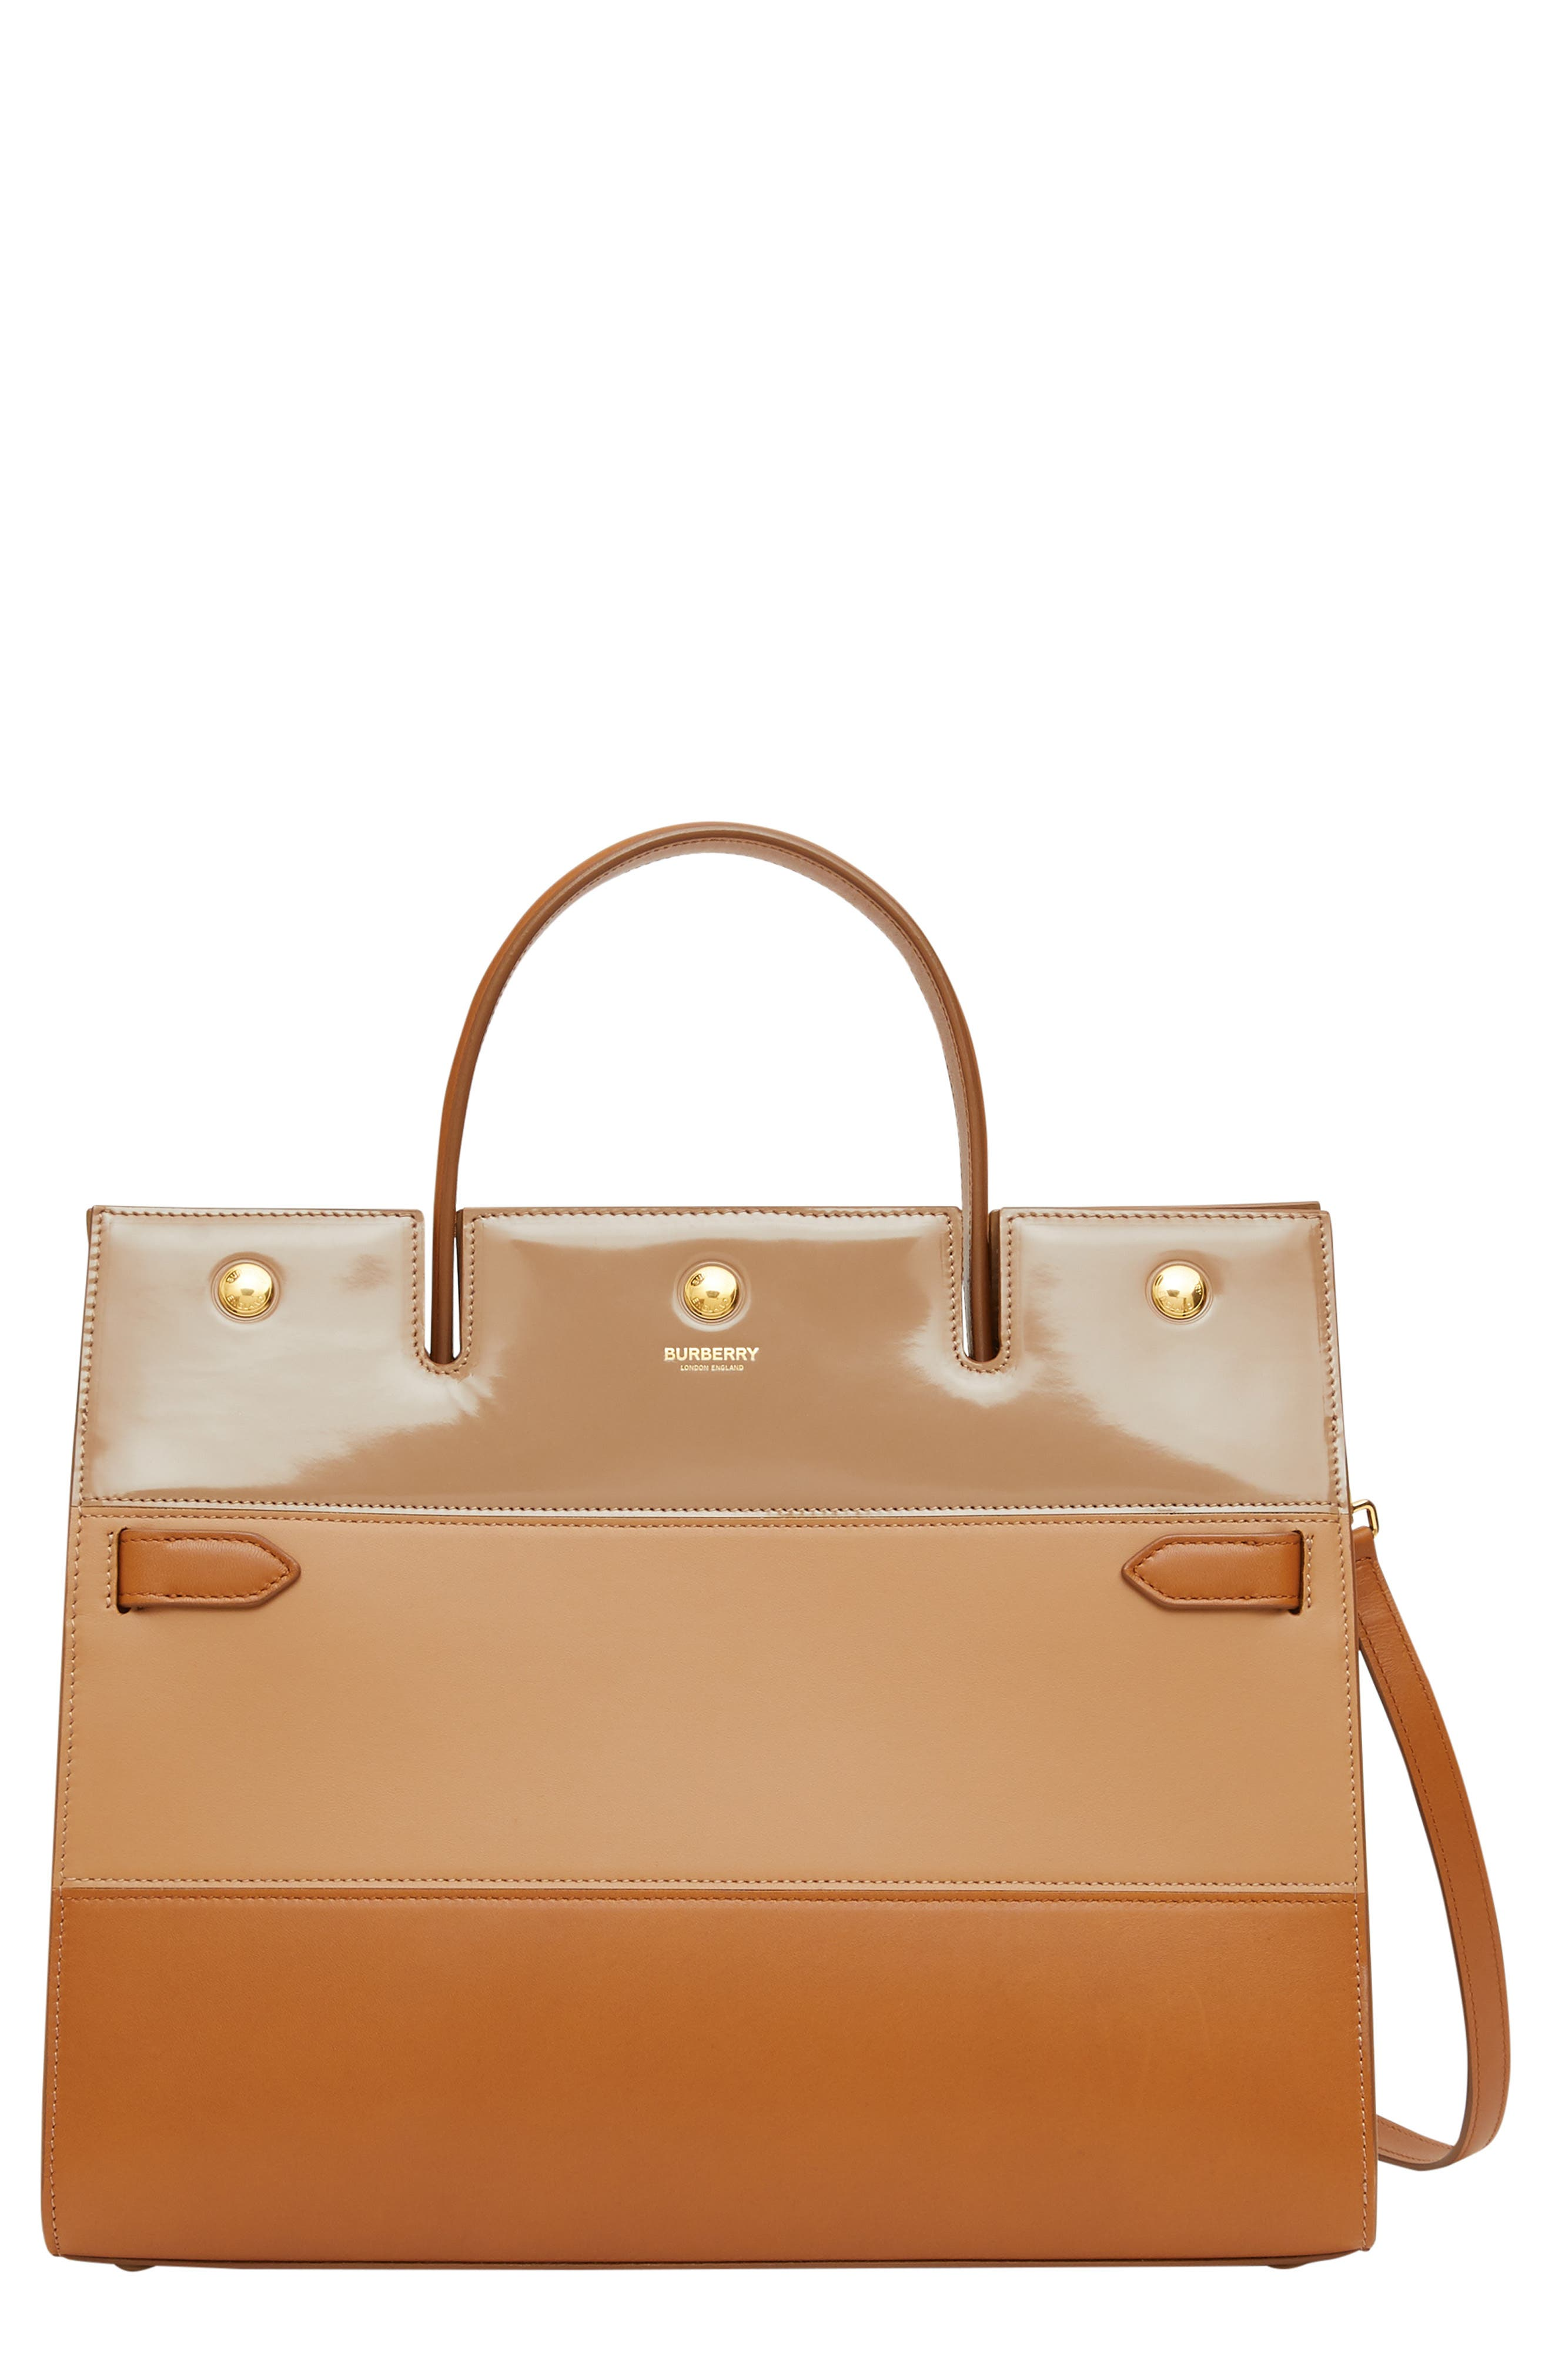 Burberry Totes Medium Title Colorblock Leather Top Handle Tote